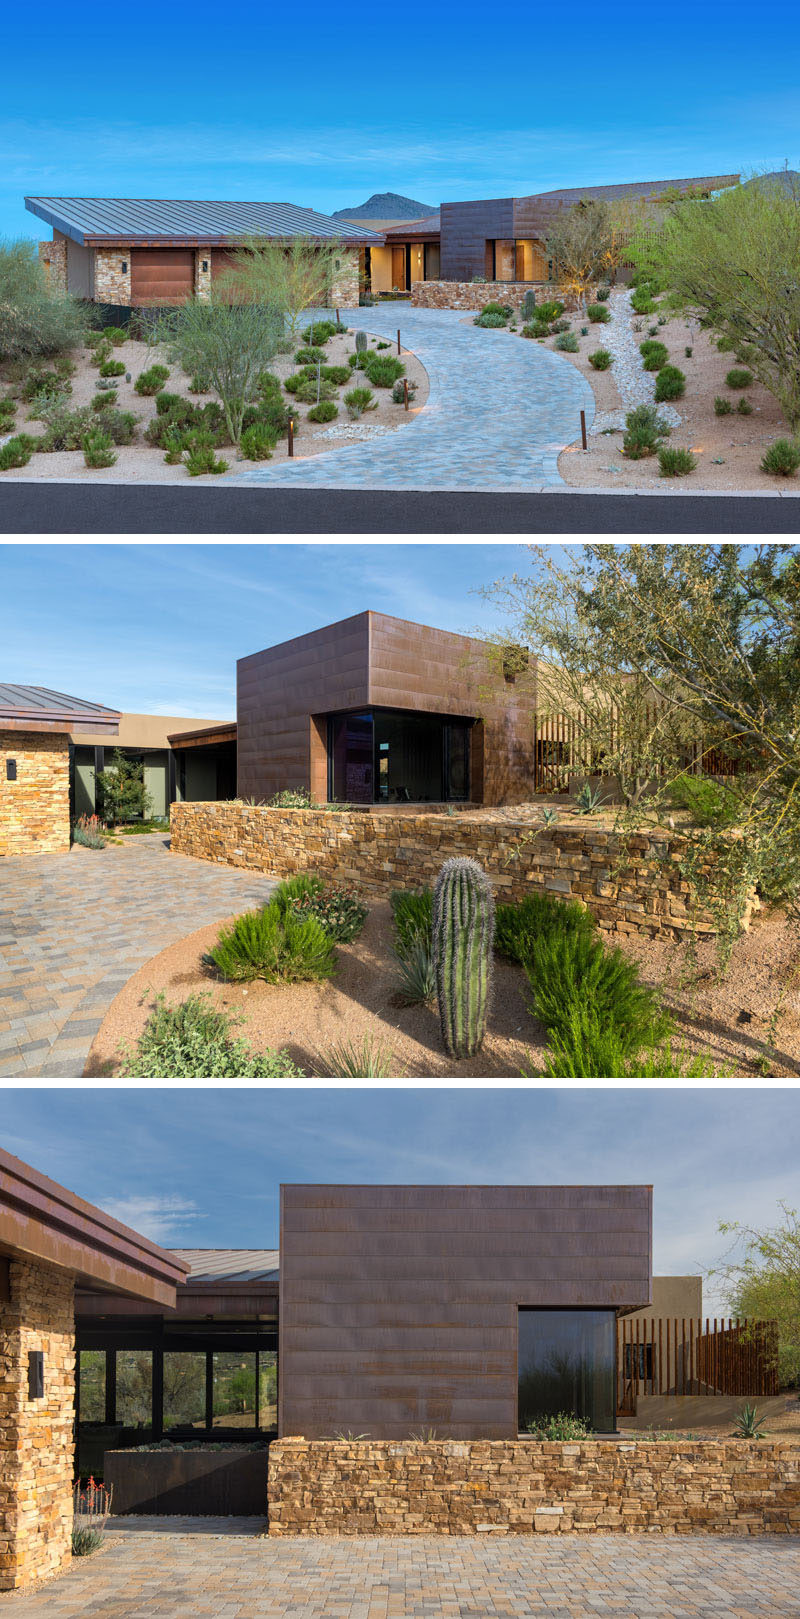 Surrounded by desert, this modern house has a simple driveway, flanked by minimal landscaping on either side, leading from the road up to the garage and entrance. #ModernHouse #Landscaping #DesertLandscaping